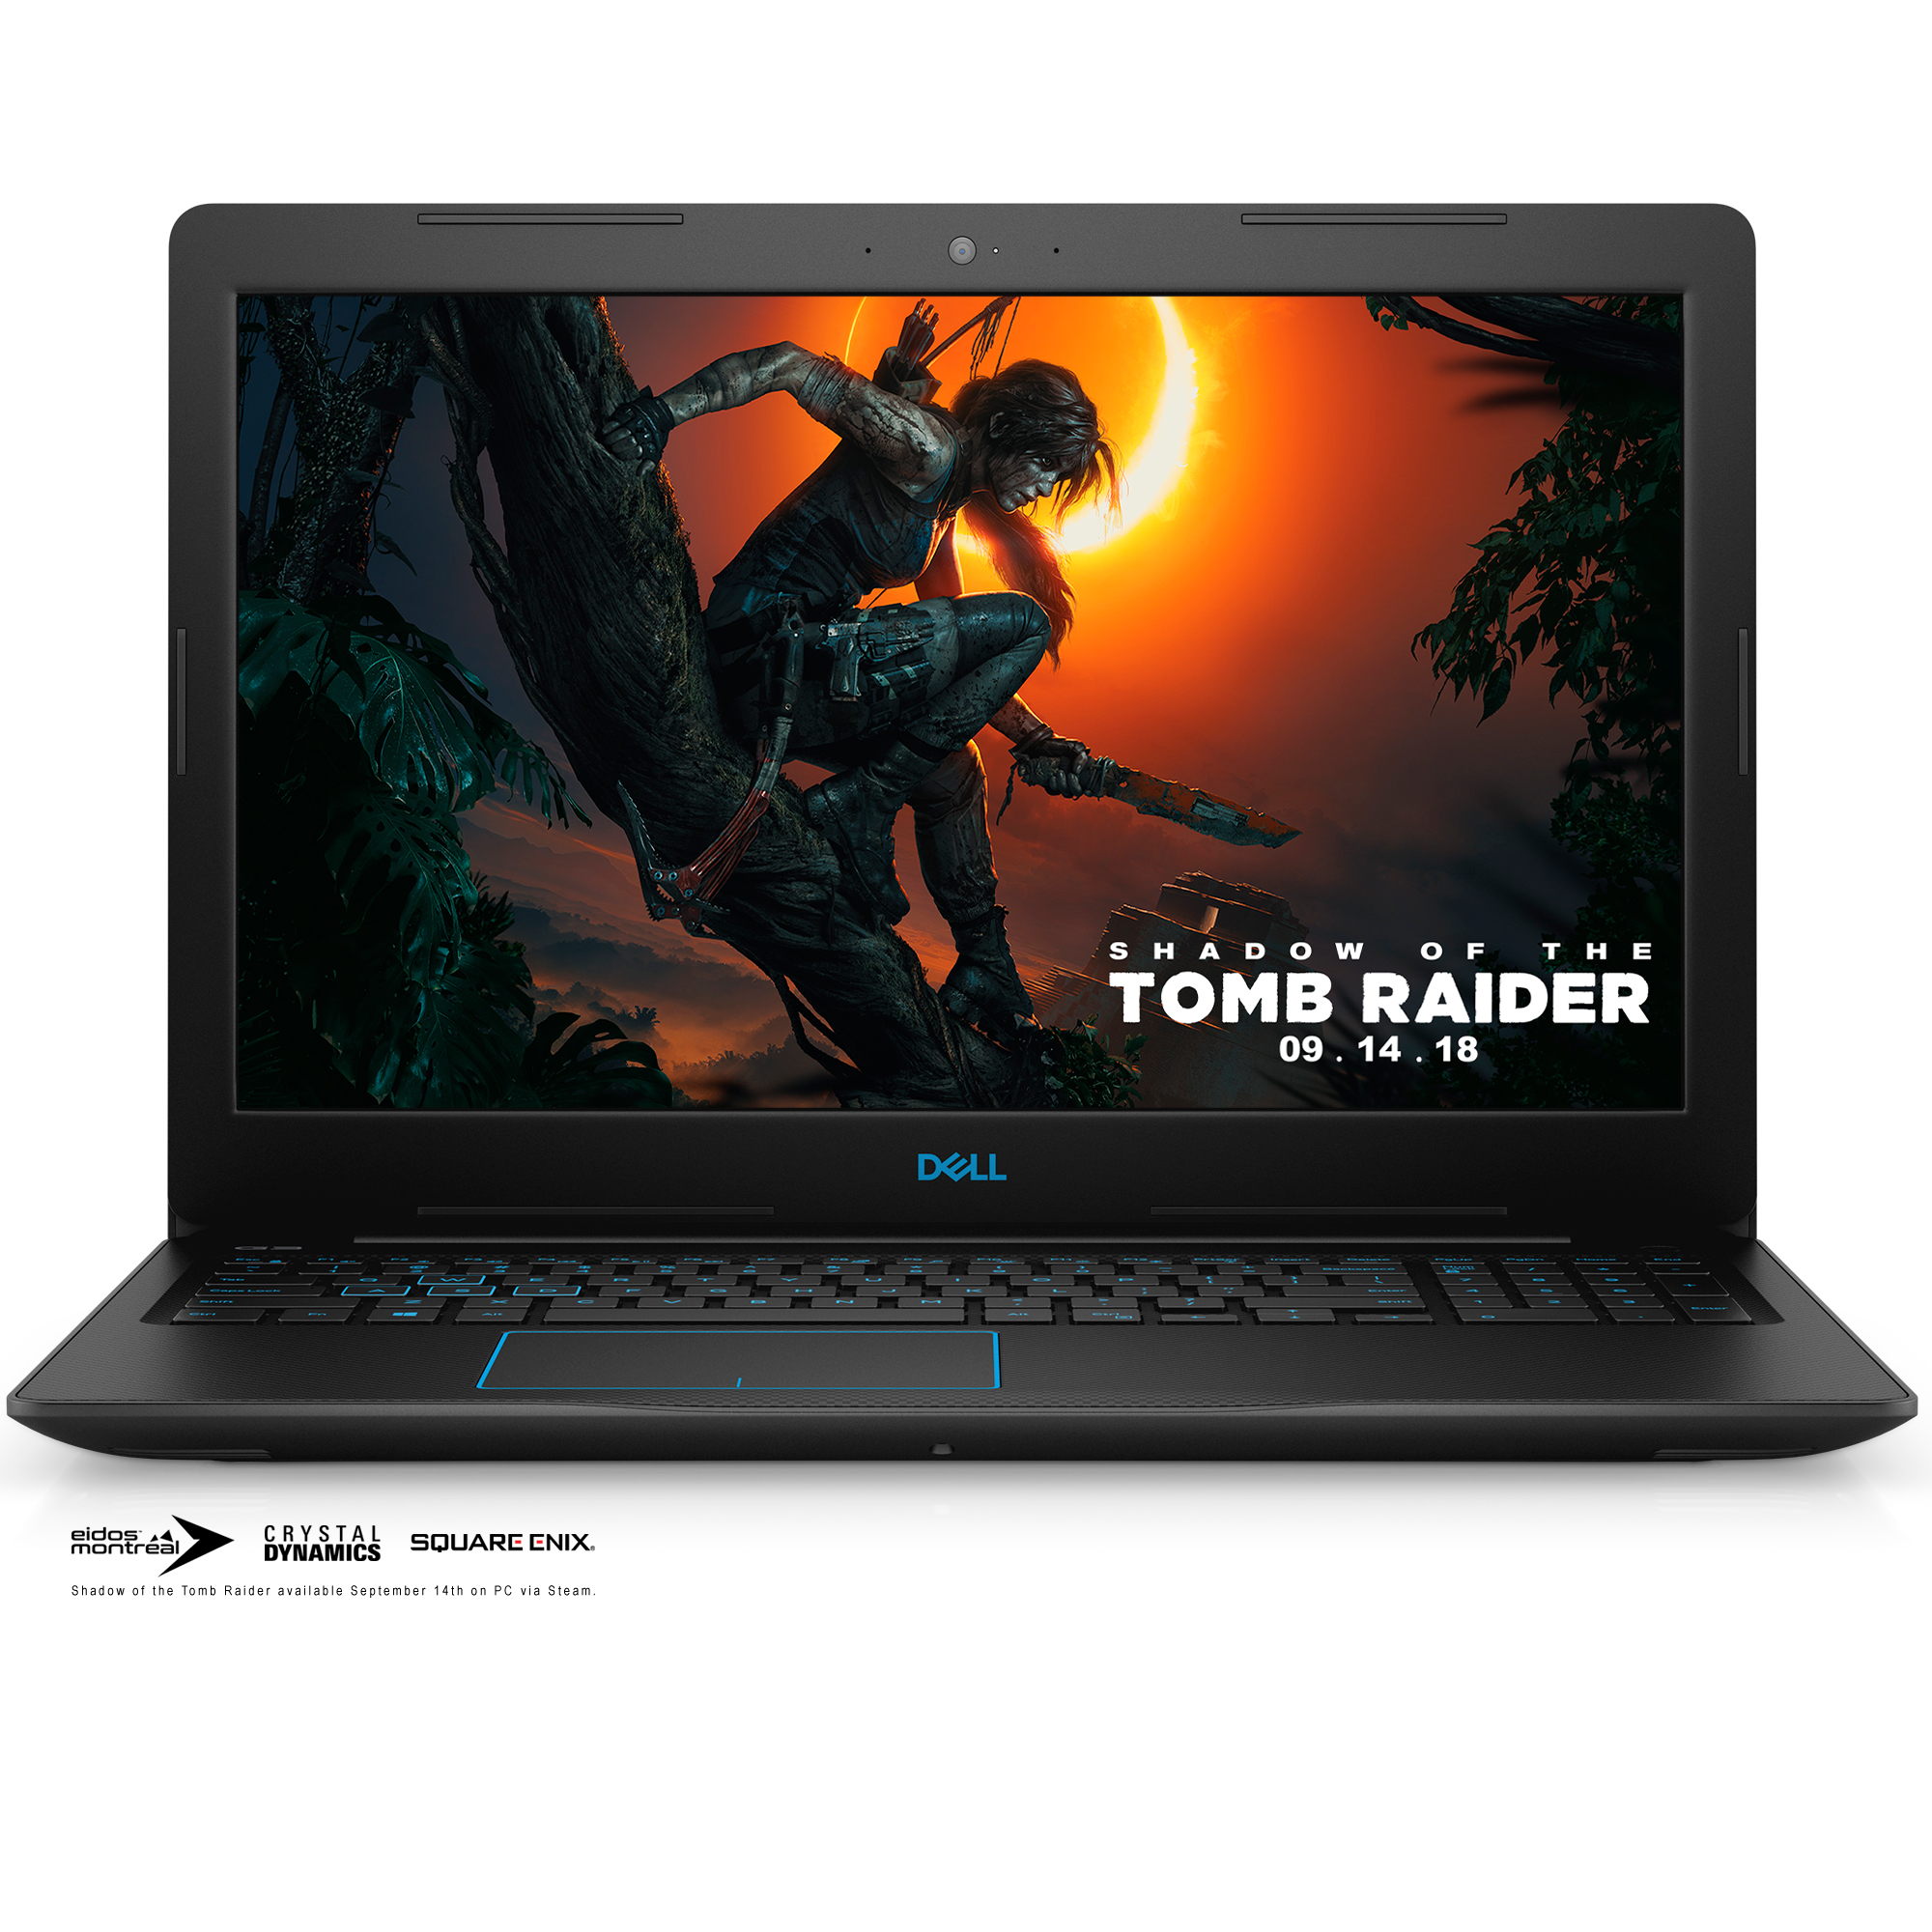 "Dell G3 15 Gaming Laptop, 15.6"", Intel® Core™ i7-8750H, NVIDIA® GeForce® GTX 1050 Ti 4GB, 256 GB (SSD) Storage + 1 TB HDD, 16GB RAM, G3579-7972BLK-PUS Gaming Bundle included"